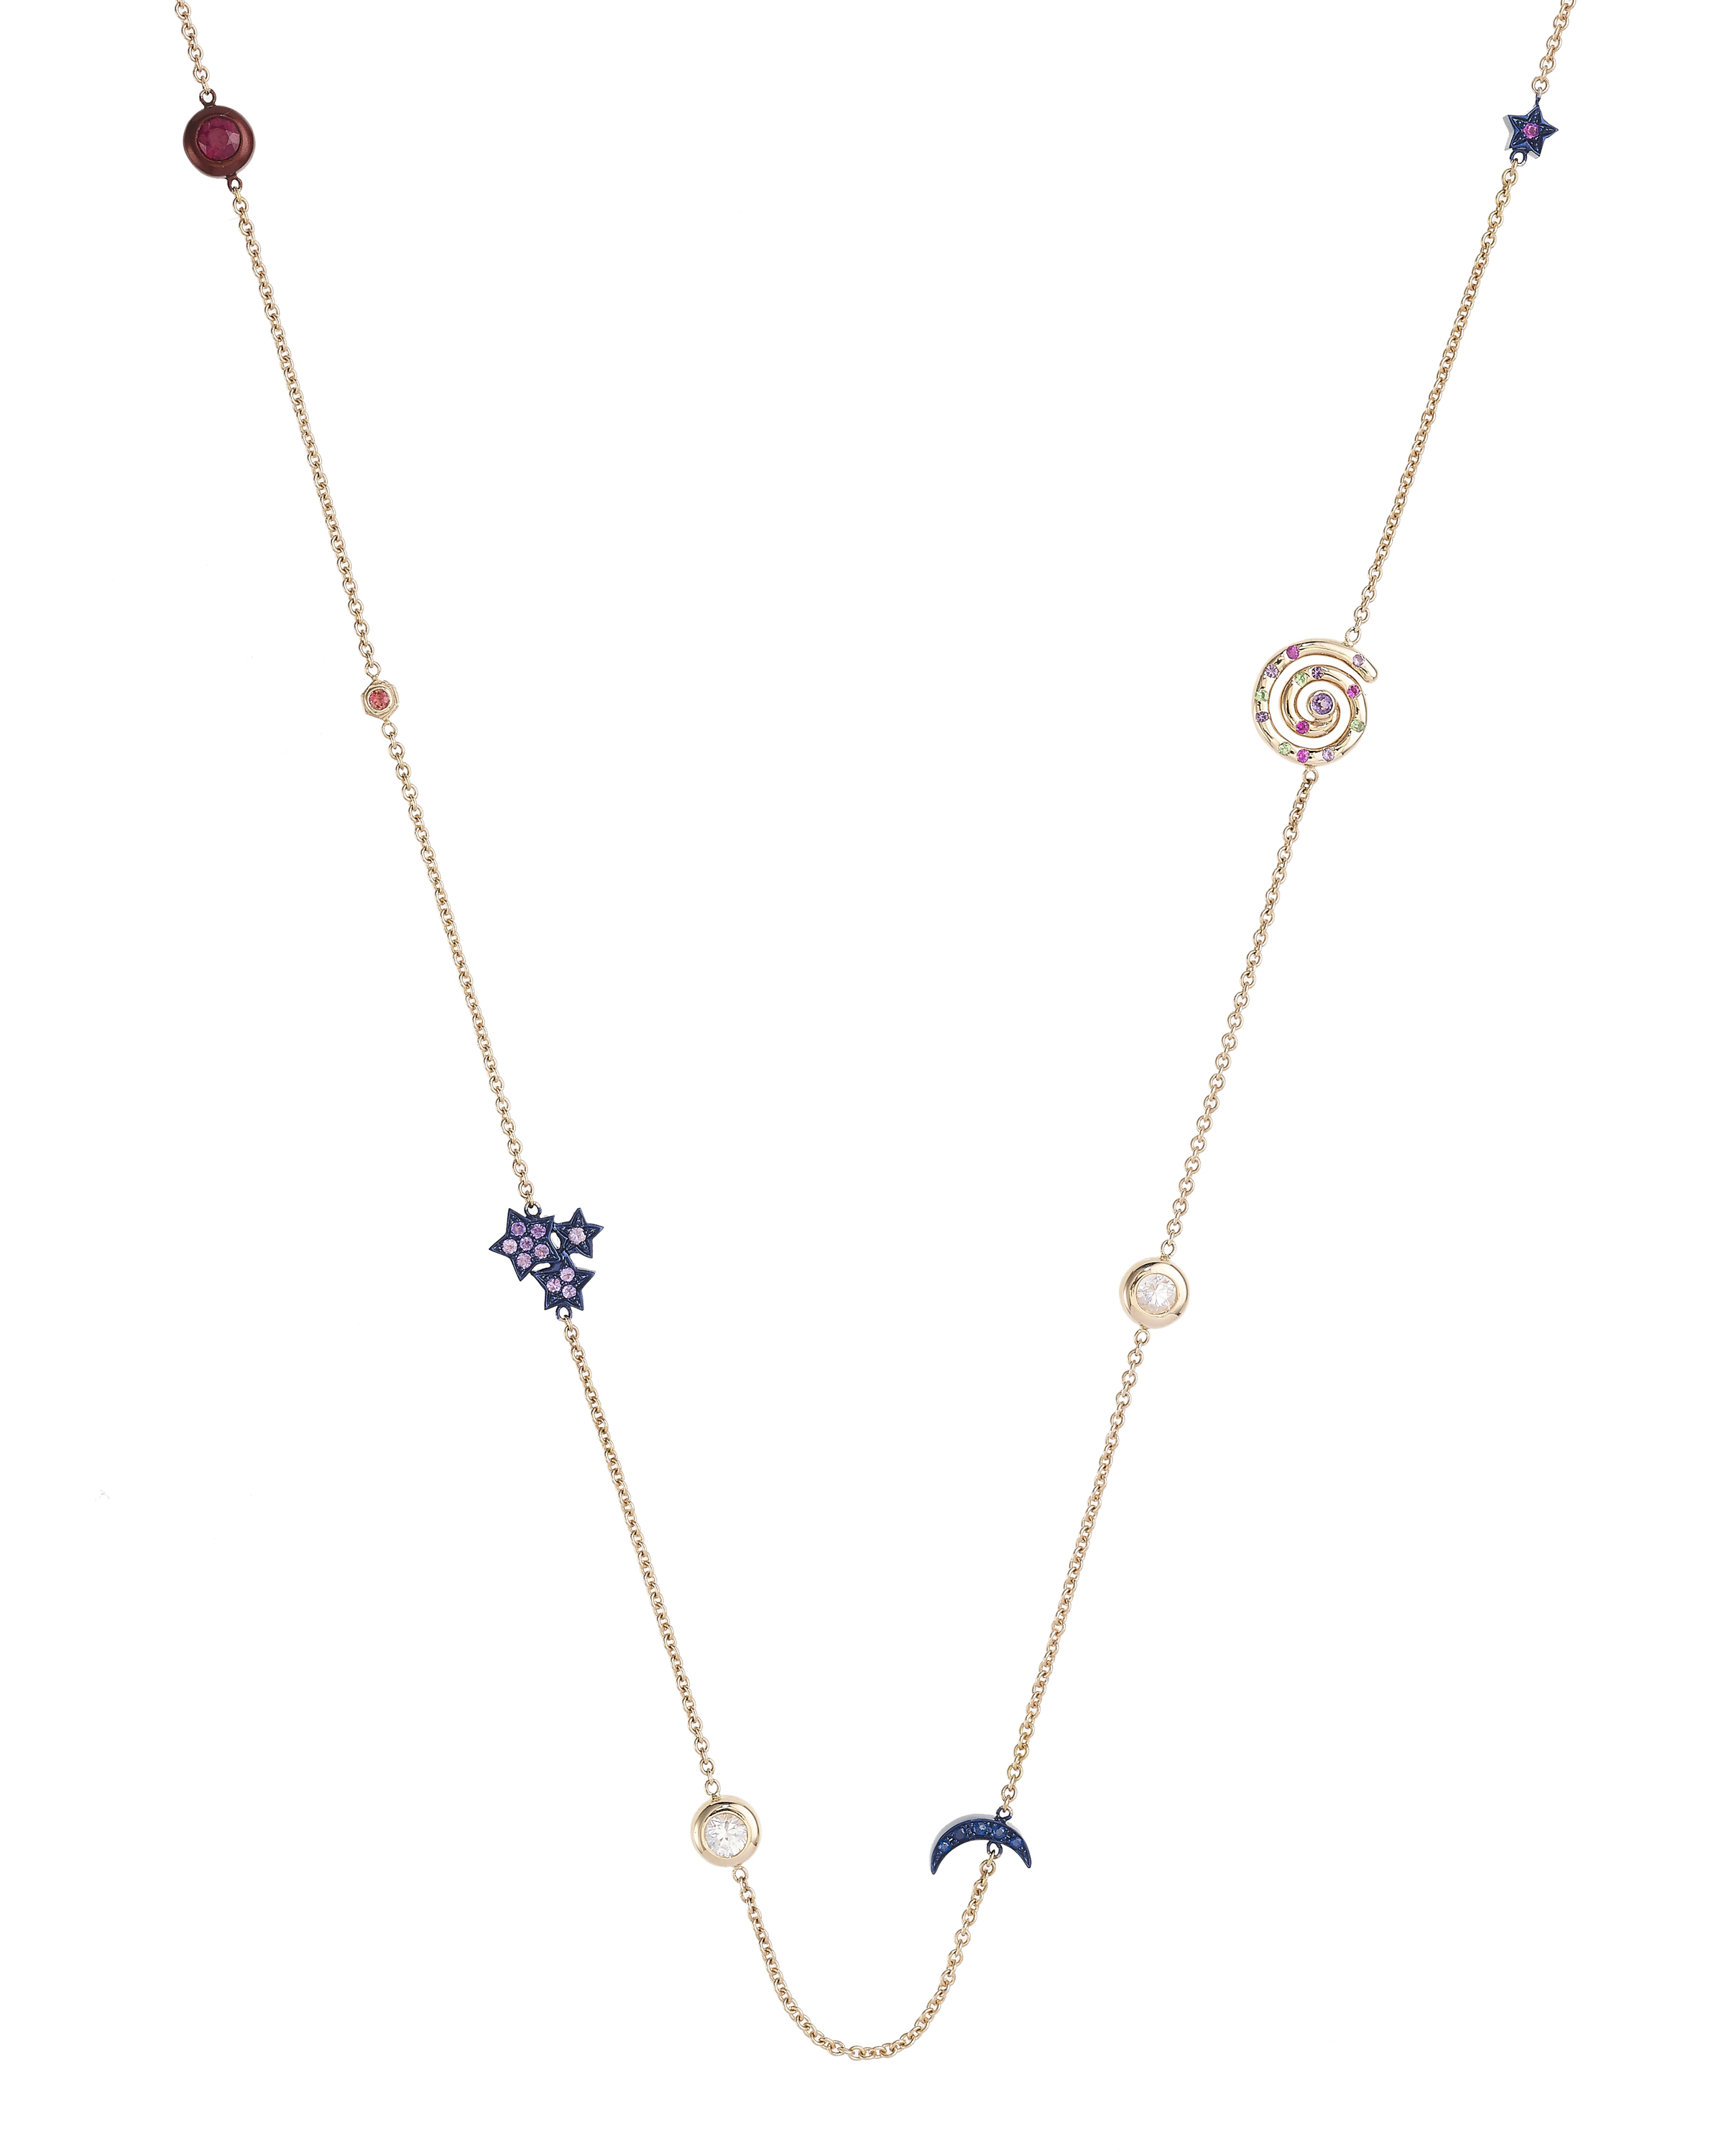 Celestial Necklace by Marmari on curated-crowd.com